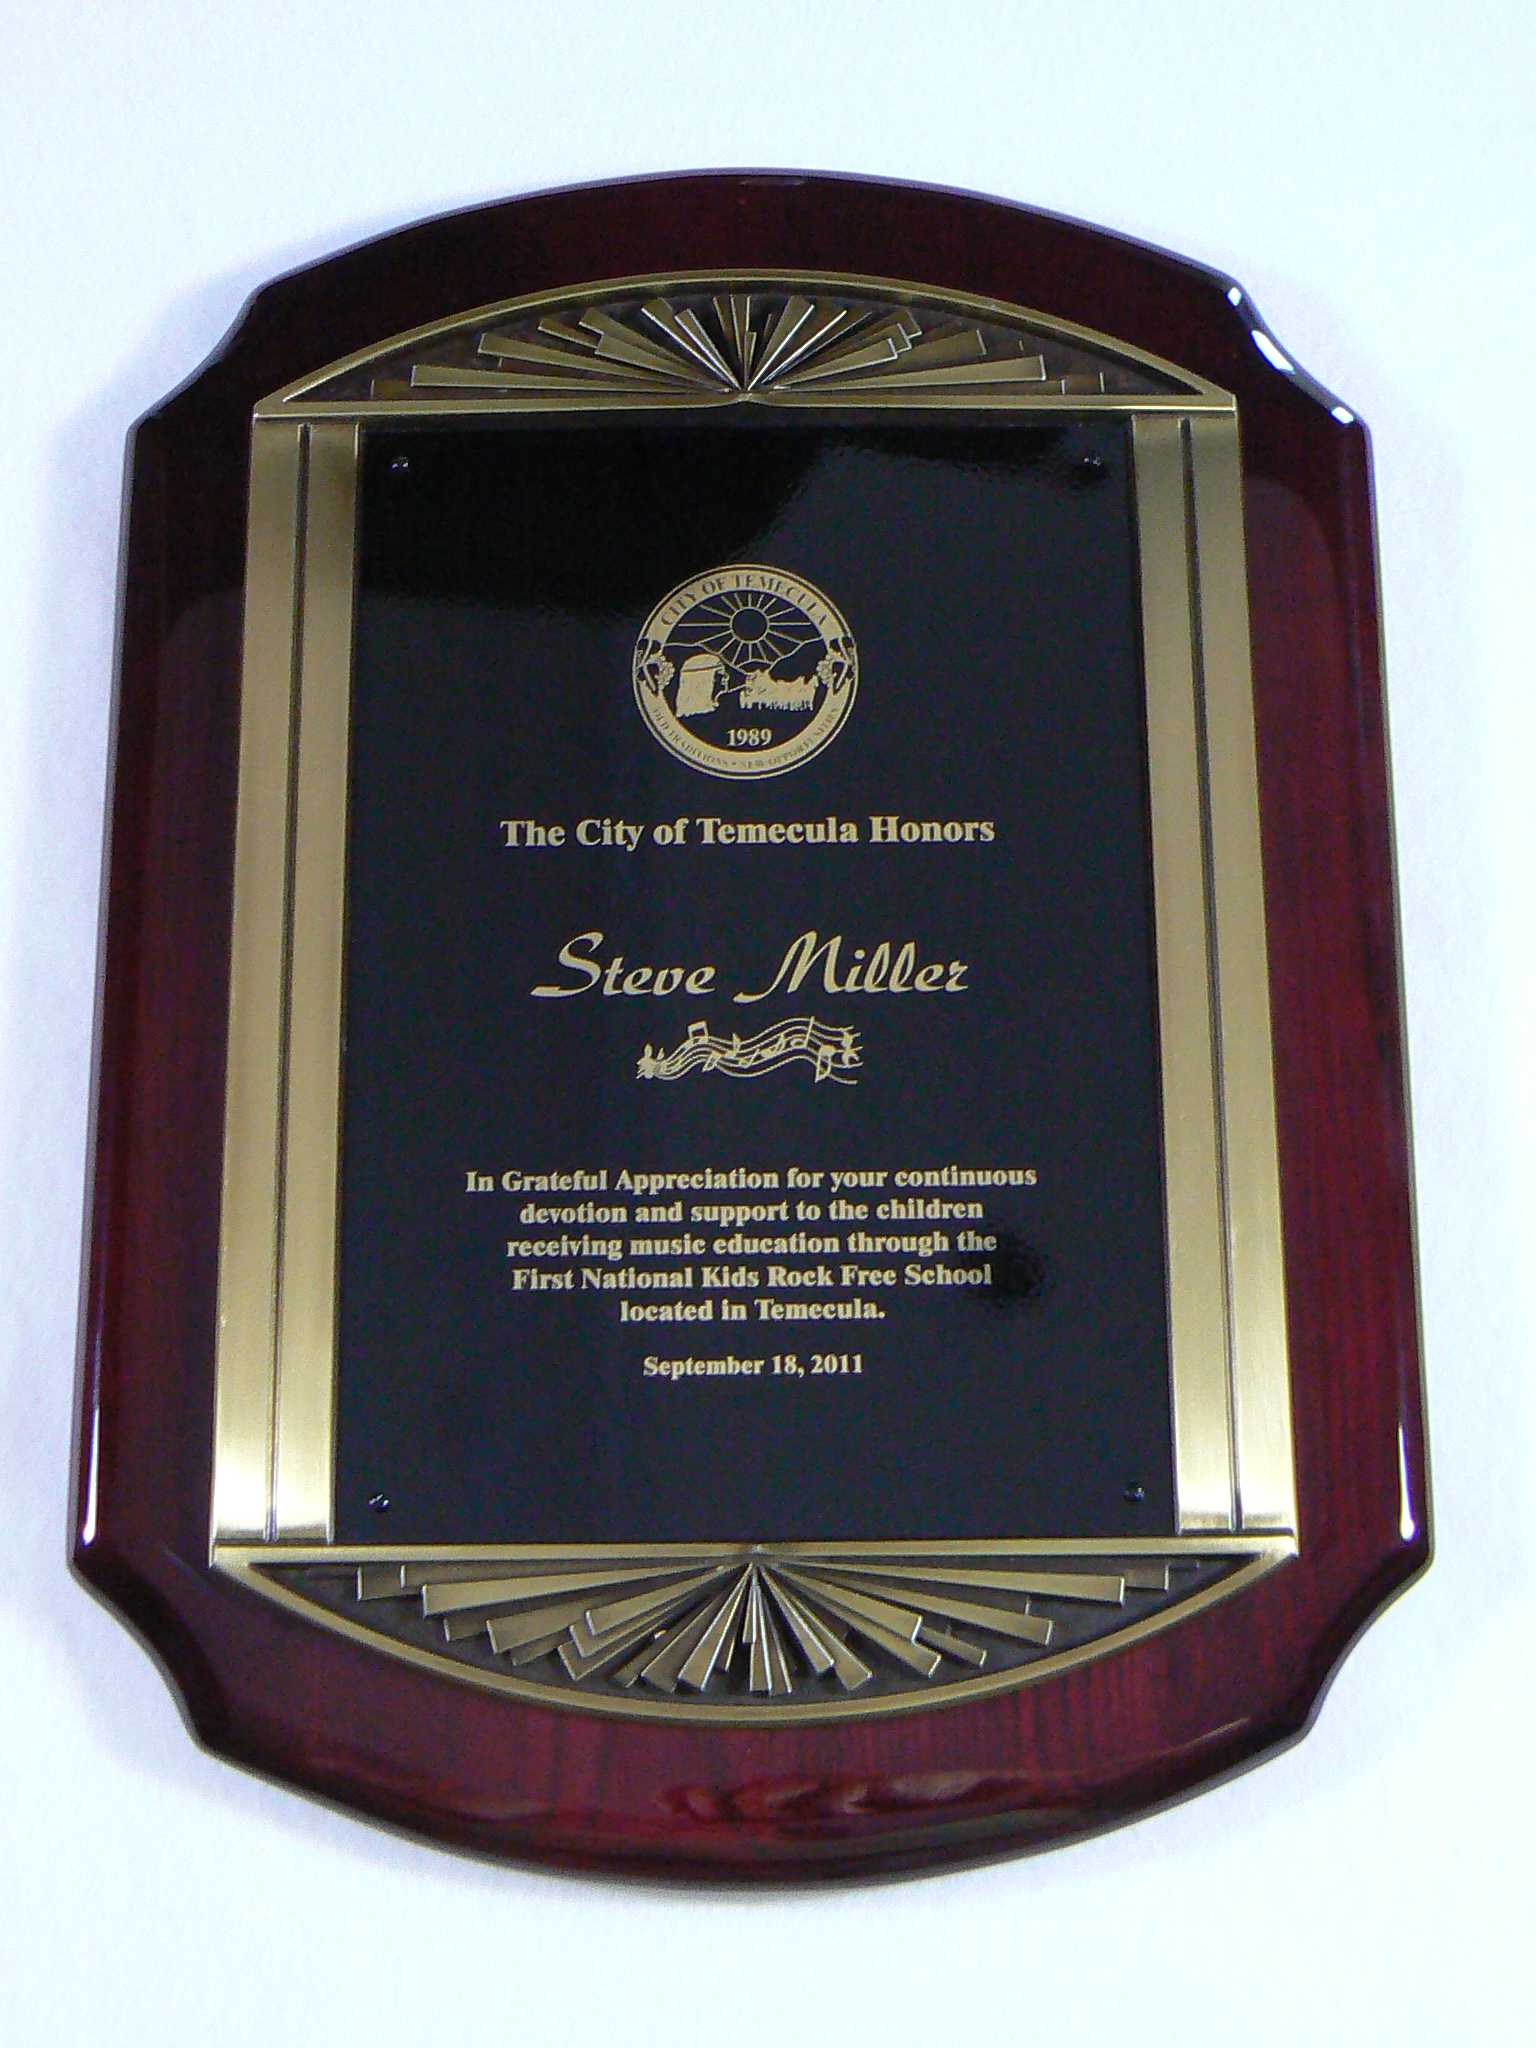 The Momence City Council met Oct. 6 to give City Hall the Les Dumontelle award.